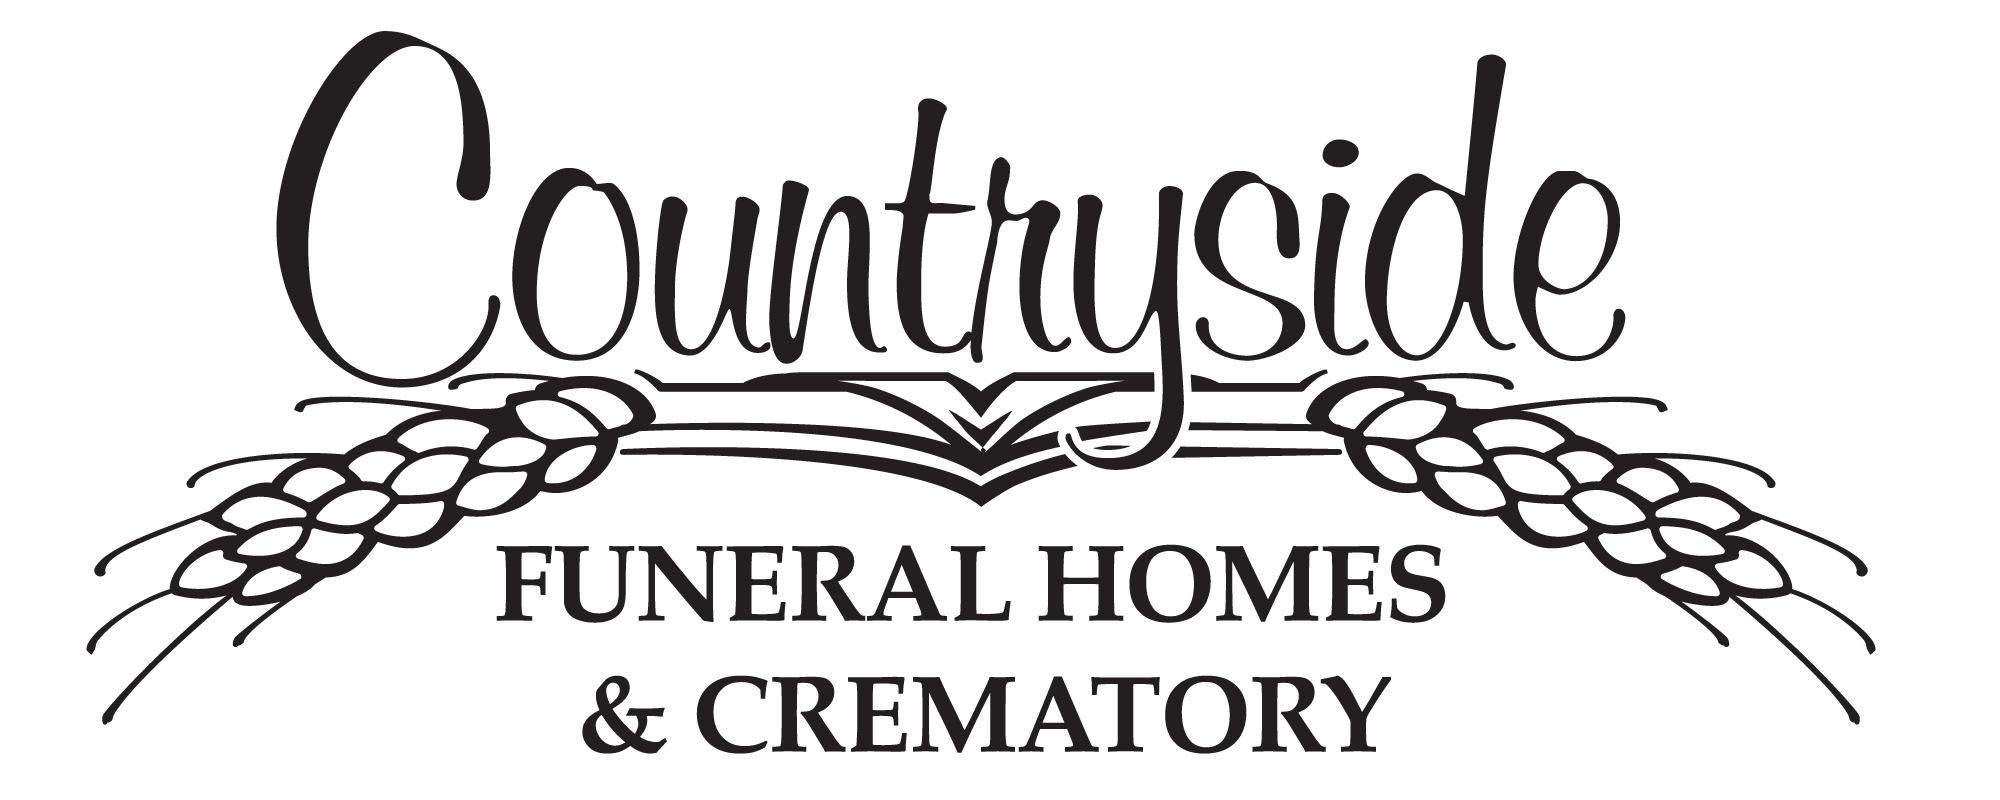 Countryside Funeral Homes & Crematory